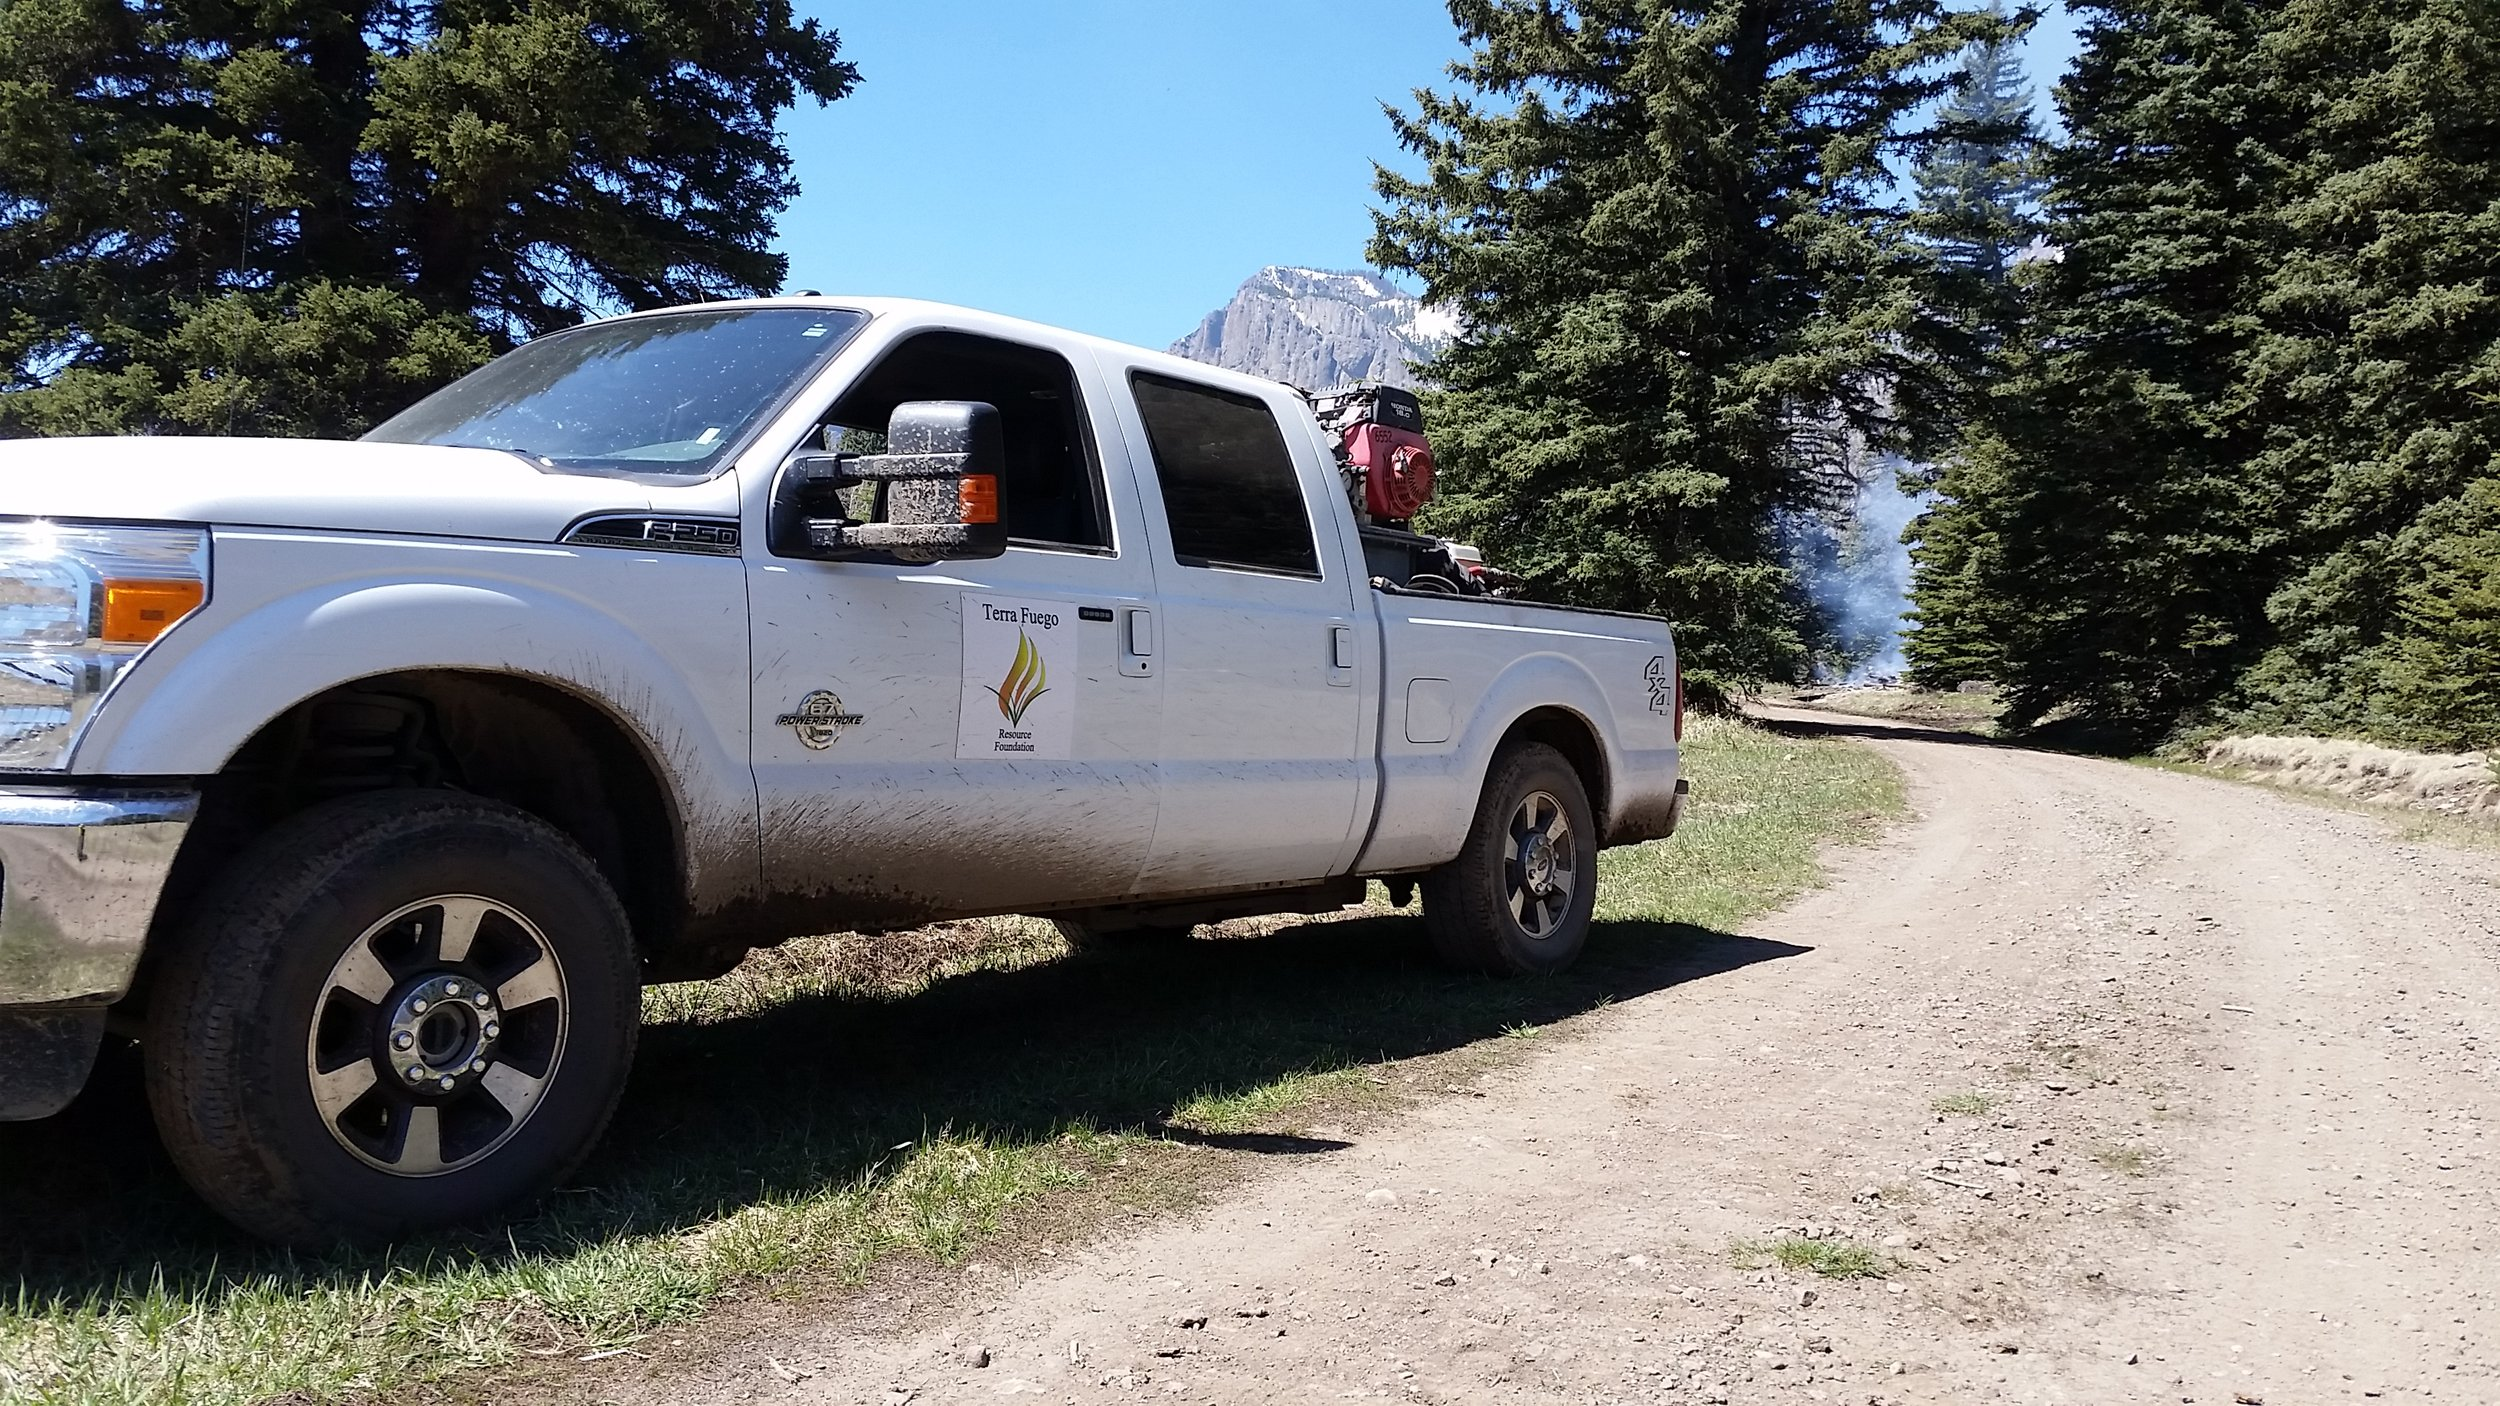 Chama Training Exchange - On a remote ranch along the Colorado-New Mexico border, we implemented burns to promote elk and deer habitat, and to protect resources from intense summer wildfires.